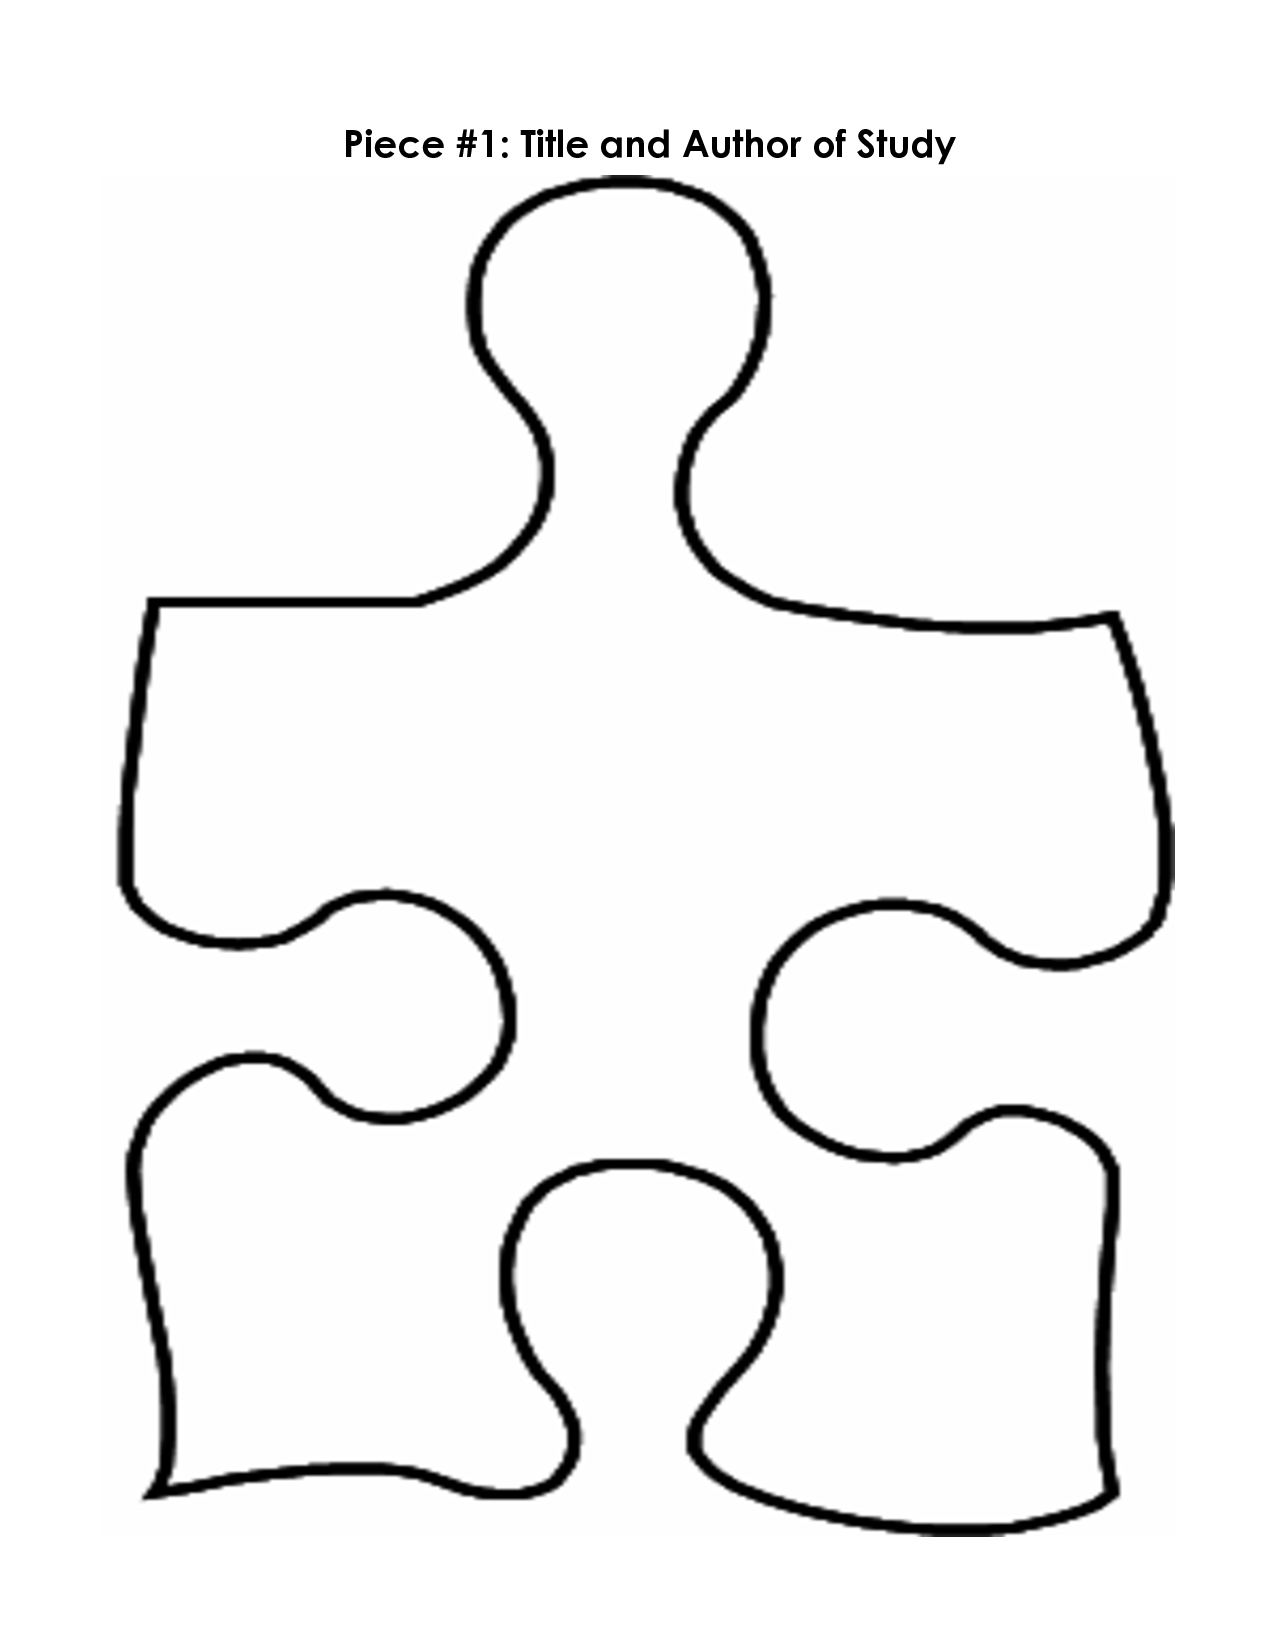 Puzzle Piece Mystery Book Template PP - ClipArt Best - ClipArt Best